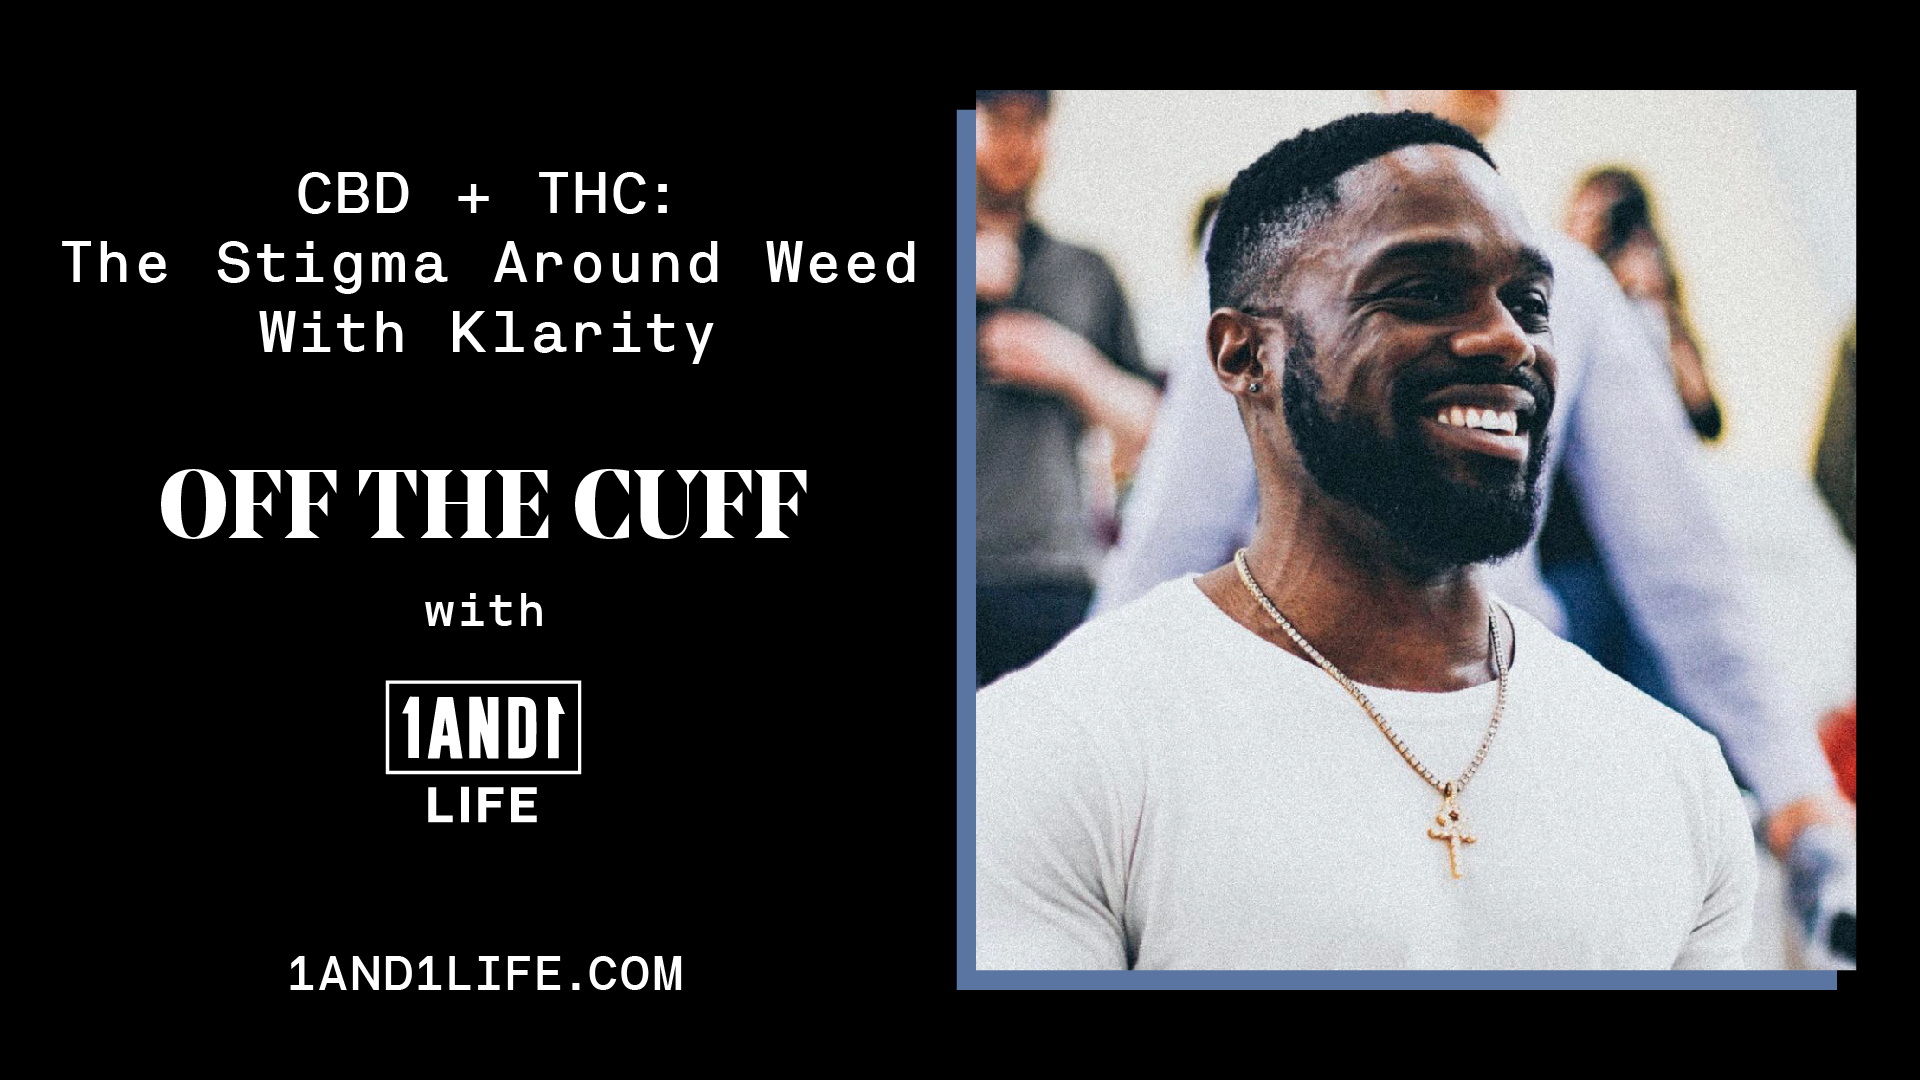 Klarity - Off The Cuff - 1AND1 Life